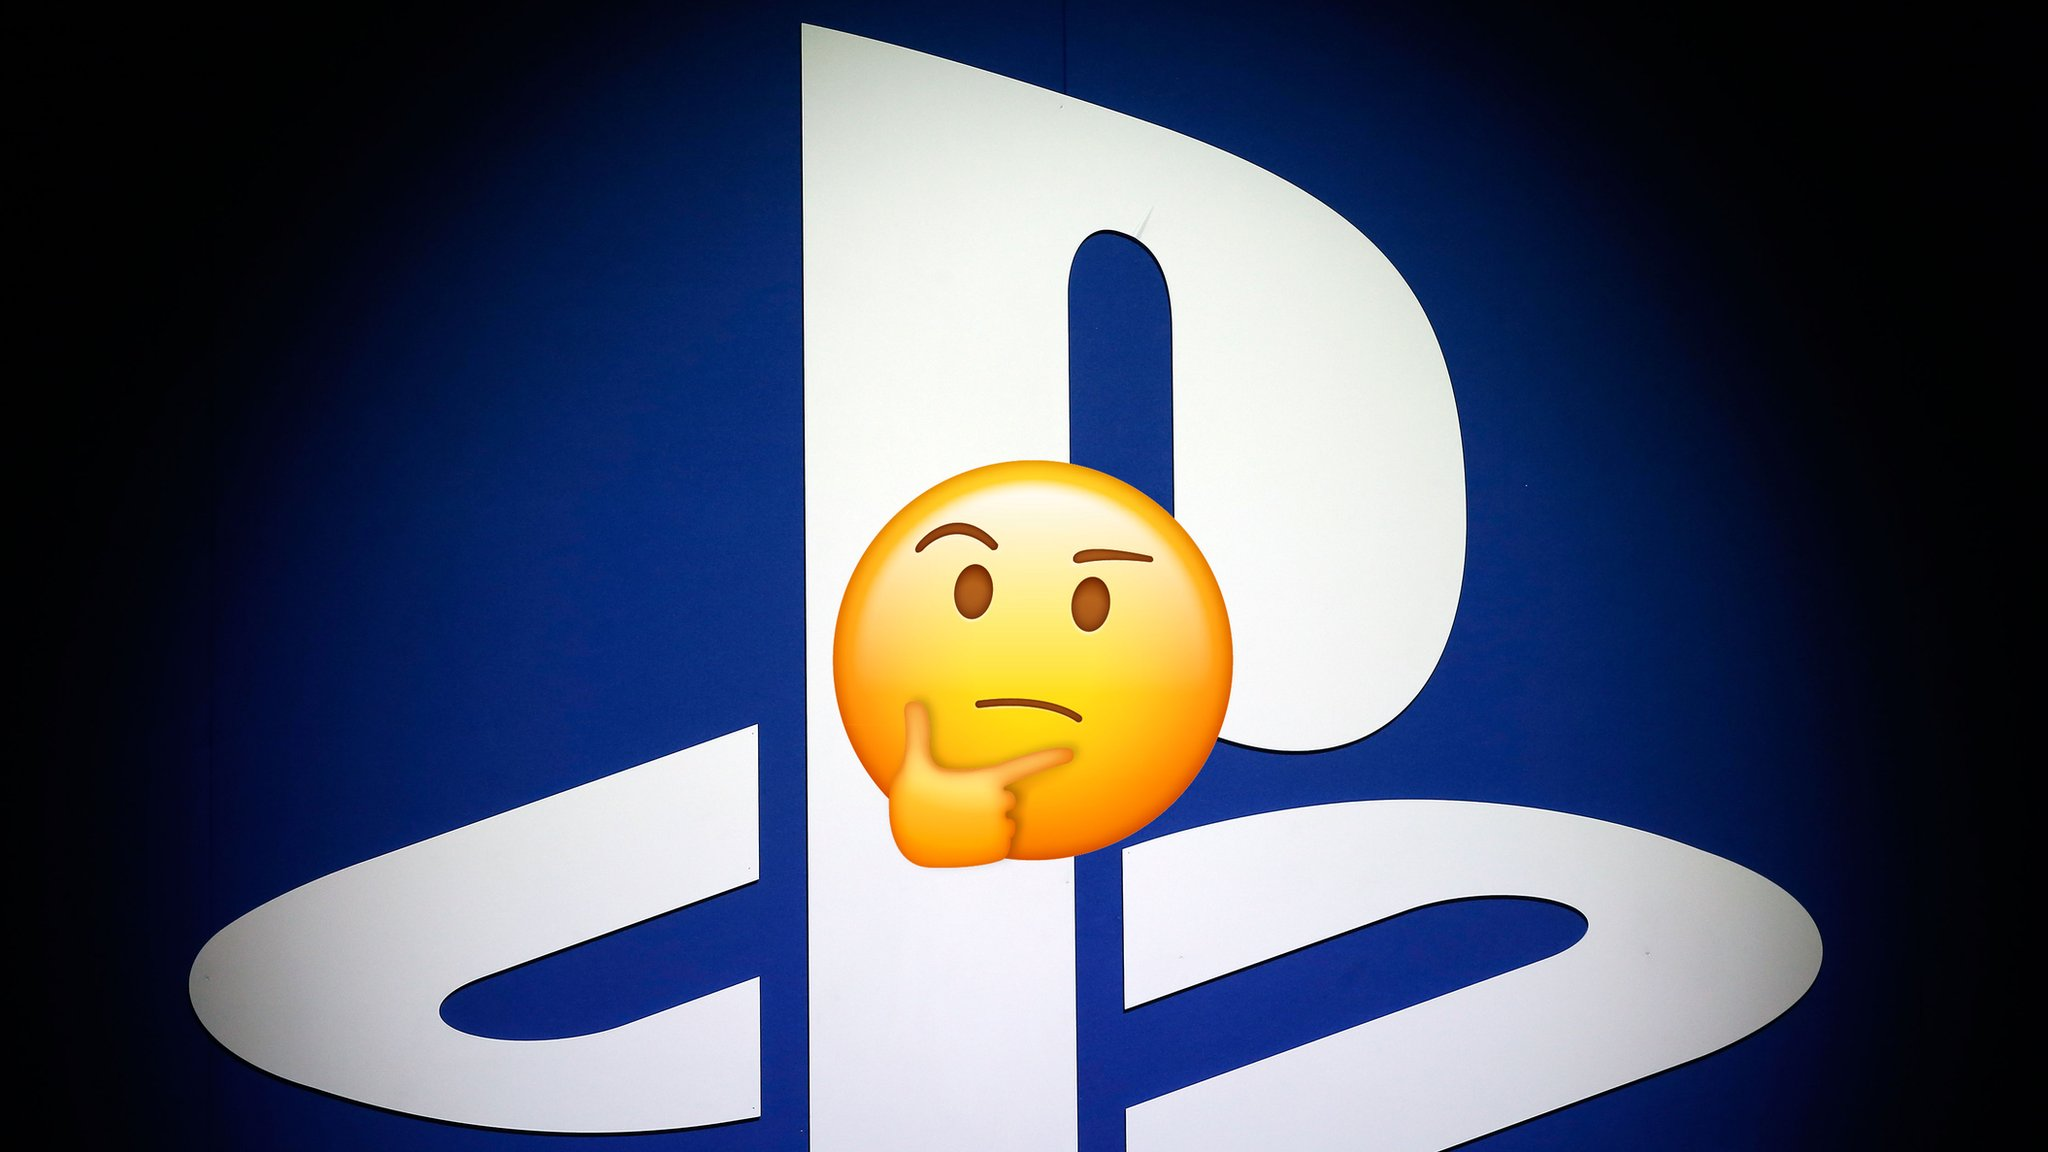 PlayStation 5: Sony reveals first details of next-gen console